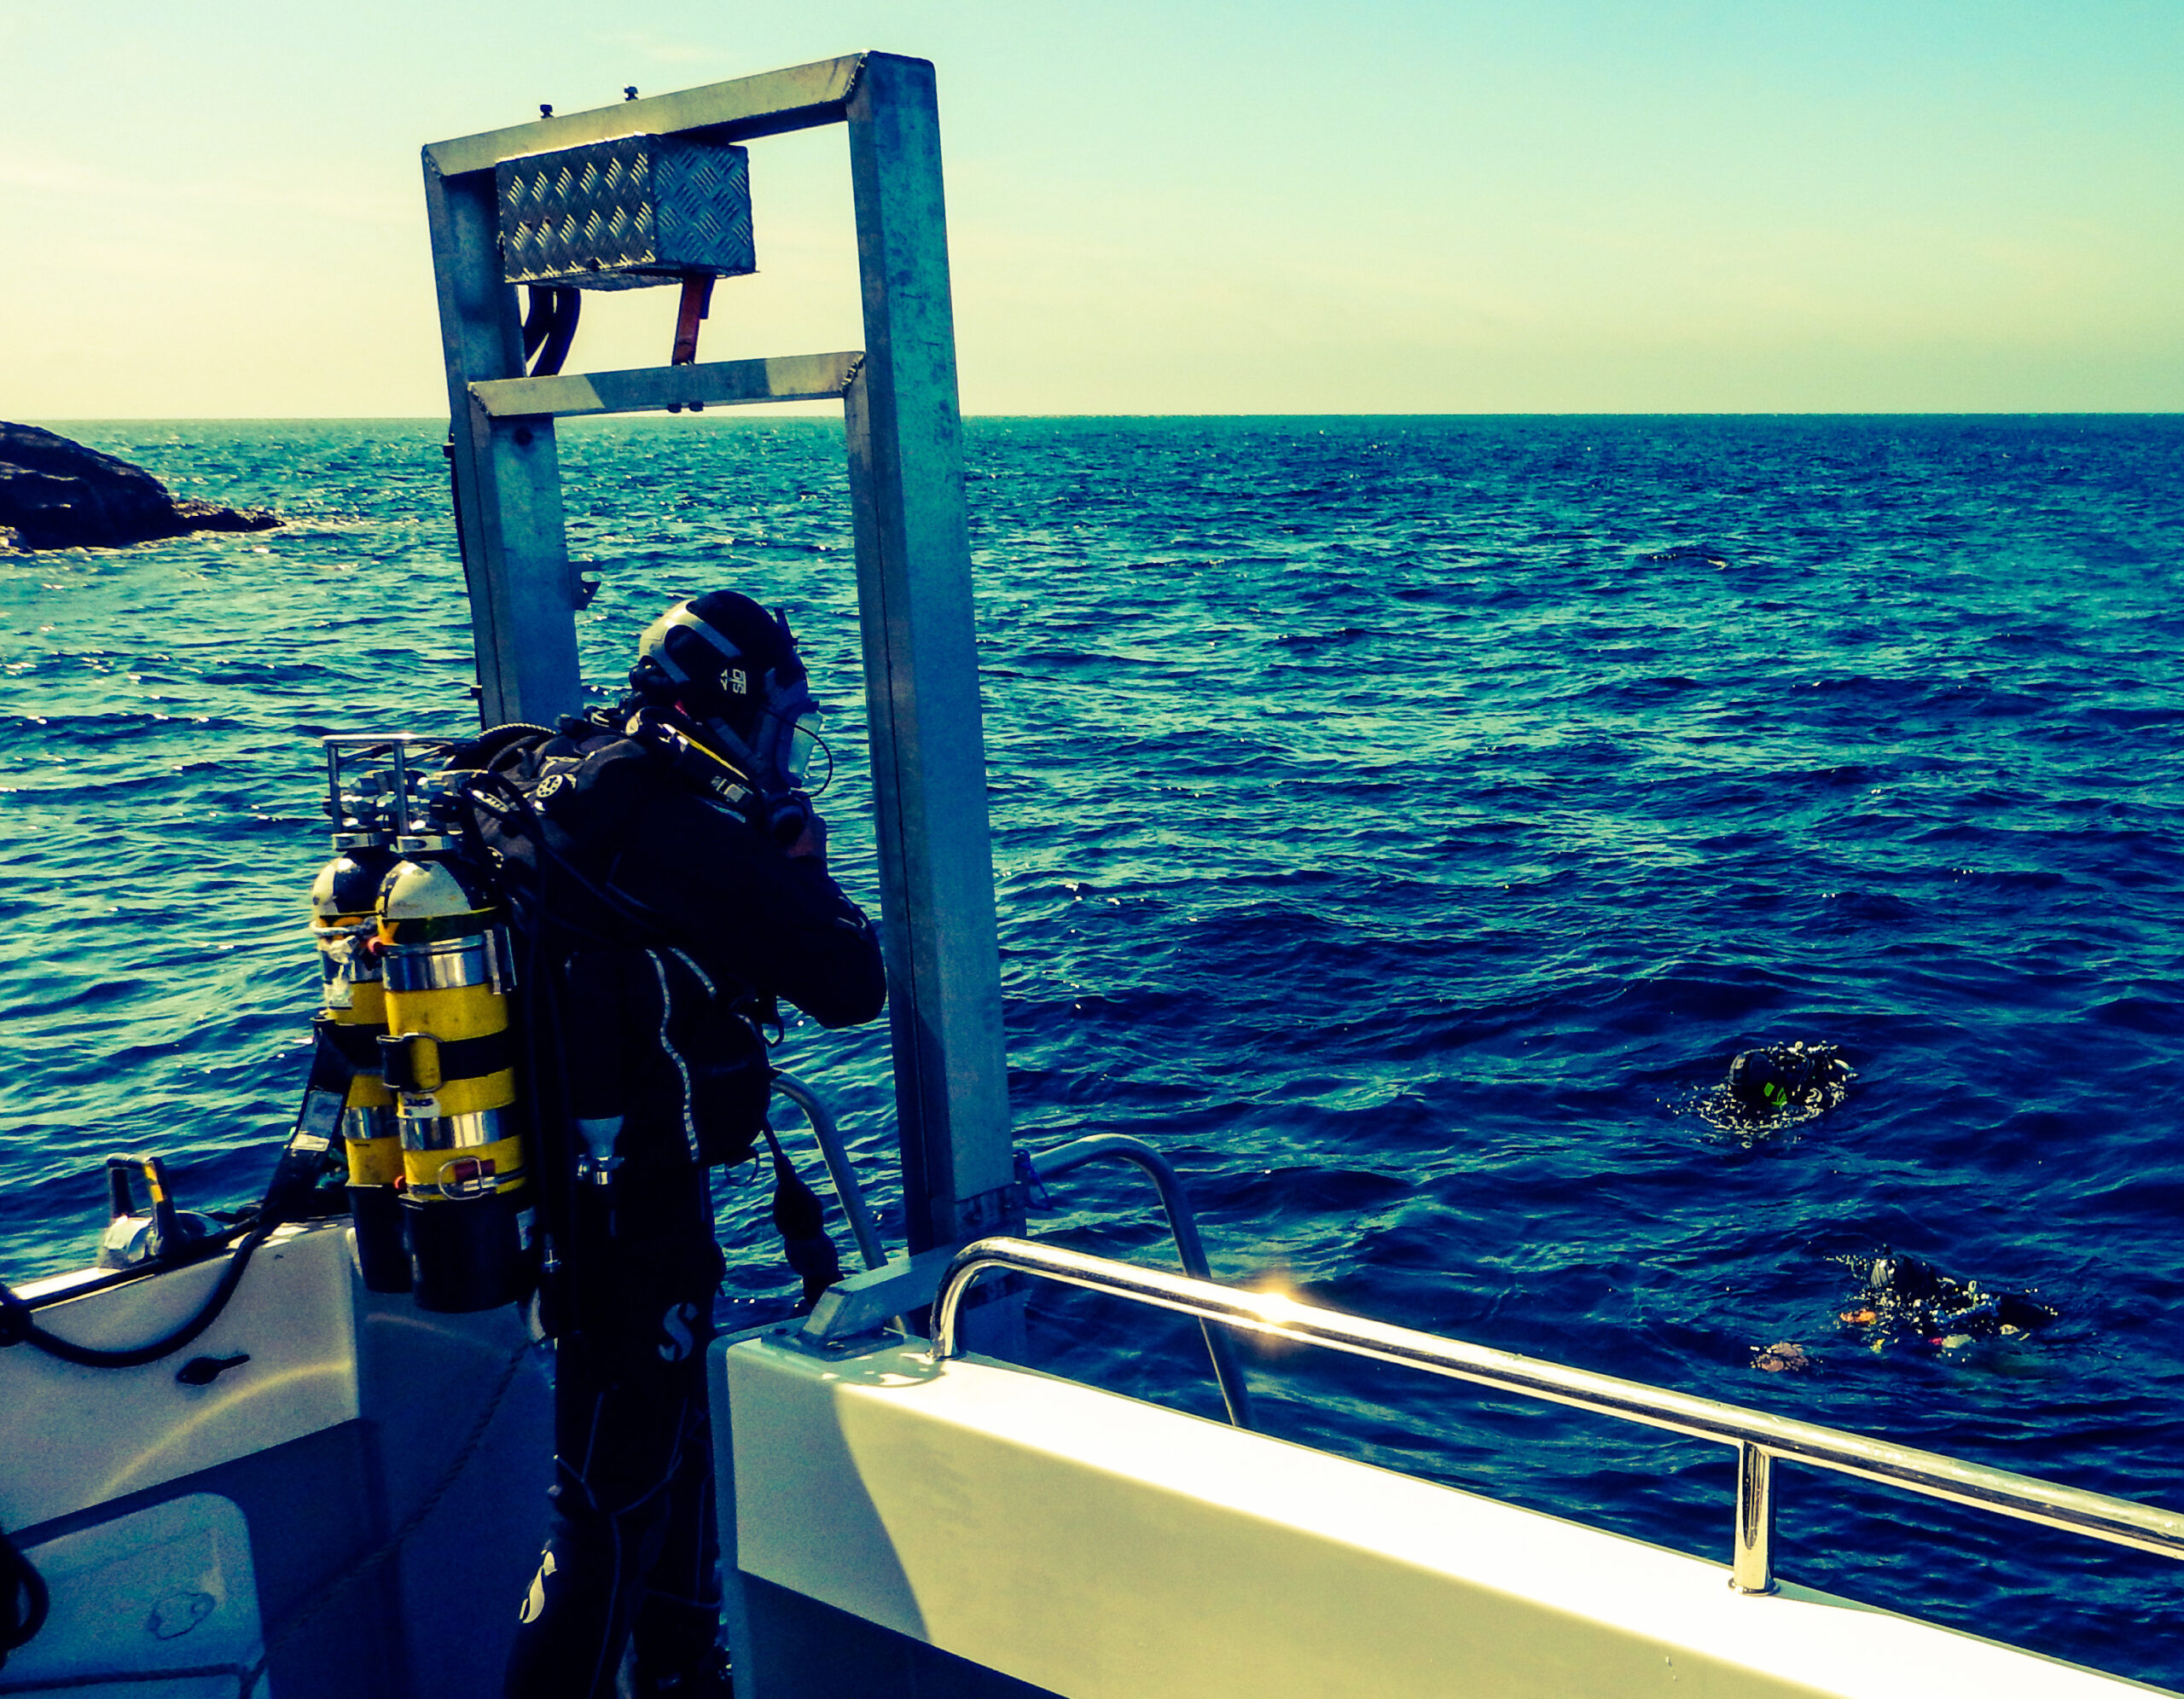 Divers reminded not to disturb La Girona and HMS Drake wreck sites - Newry Times - newry news live